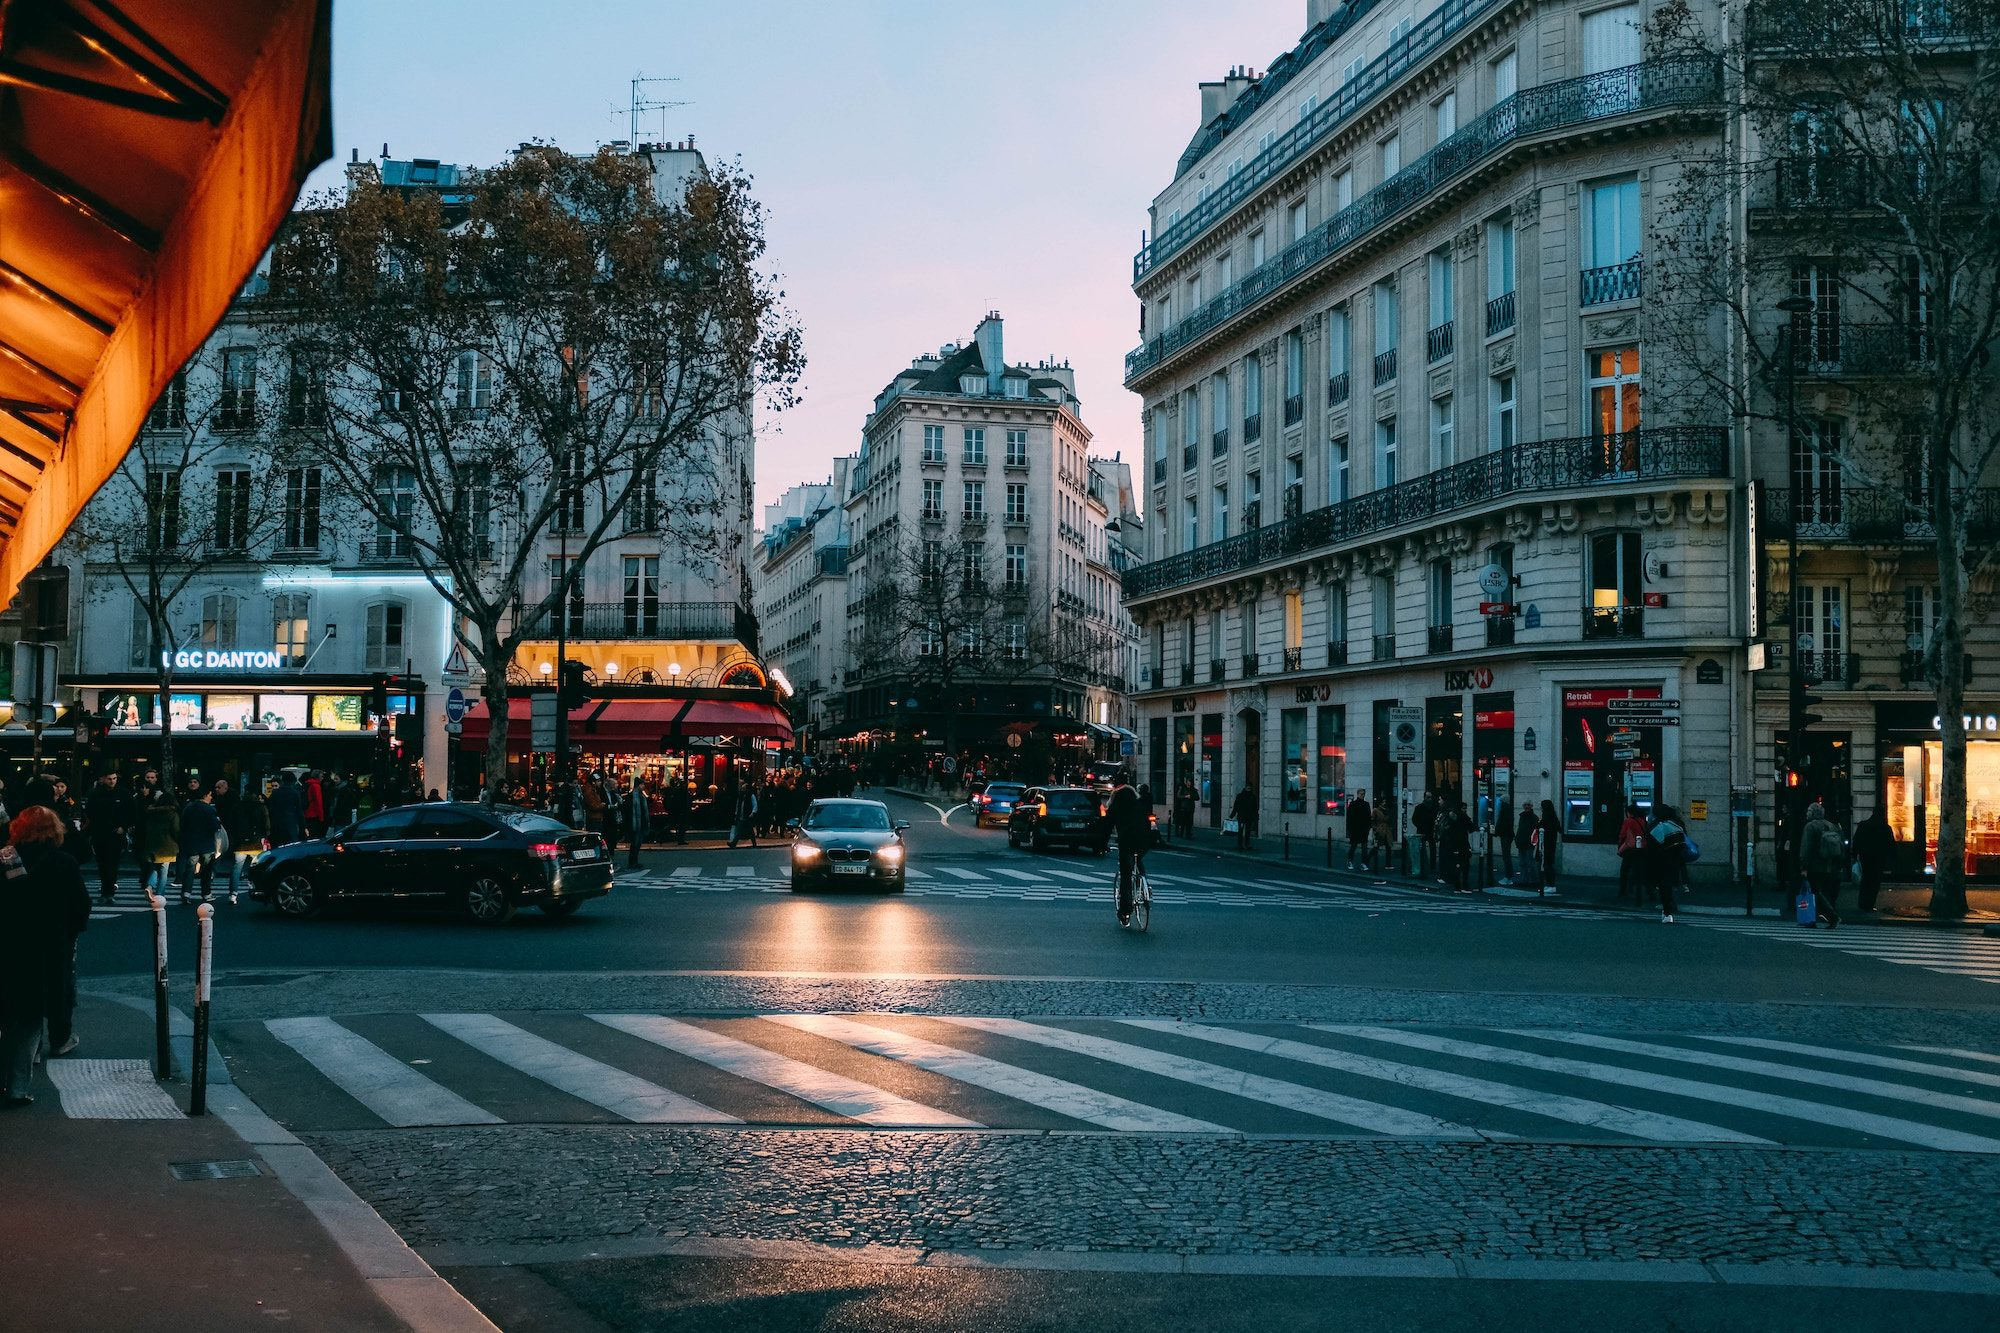 An evening street scene in Paris with bluish tinges and warm reddish lights from the surrounding cafés at this crossroads.